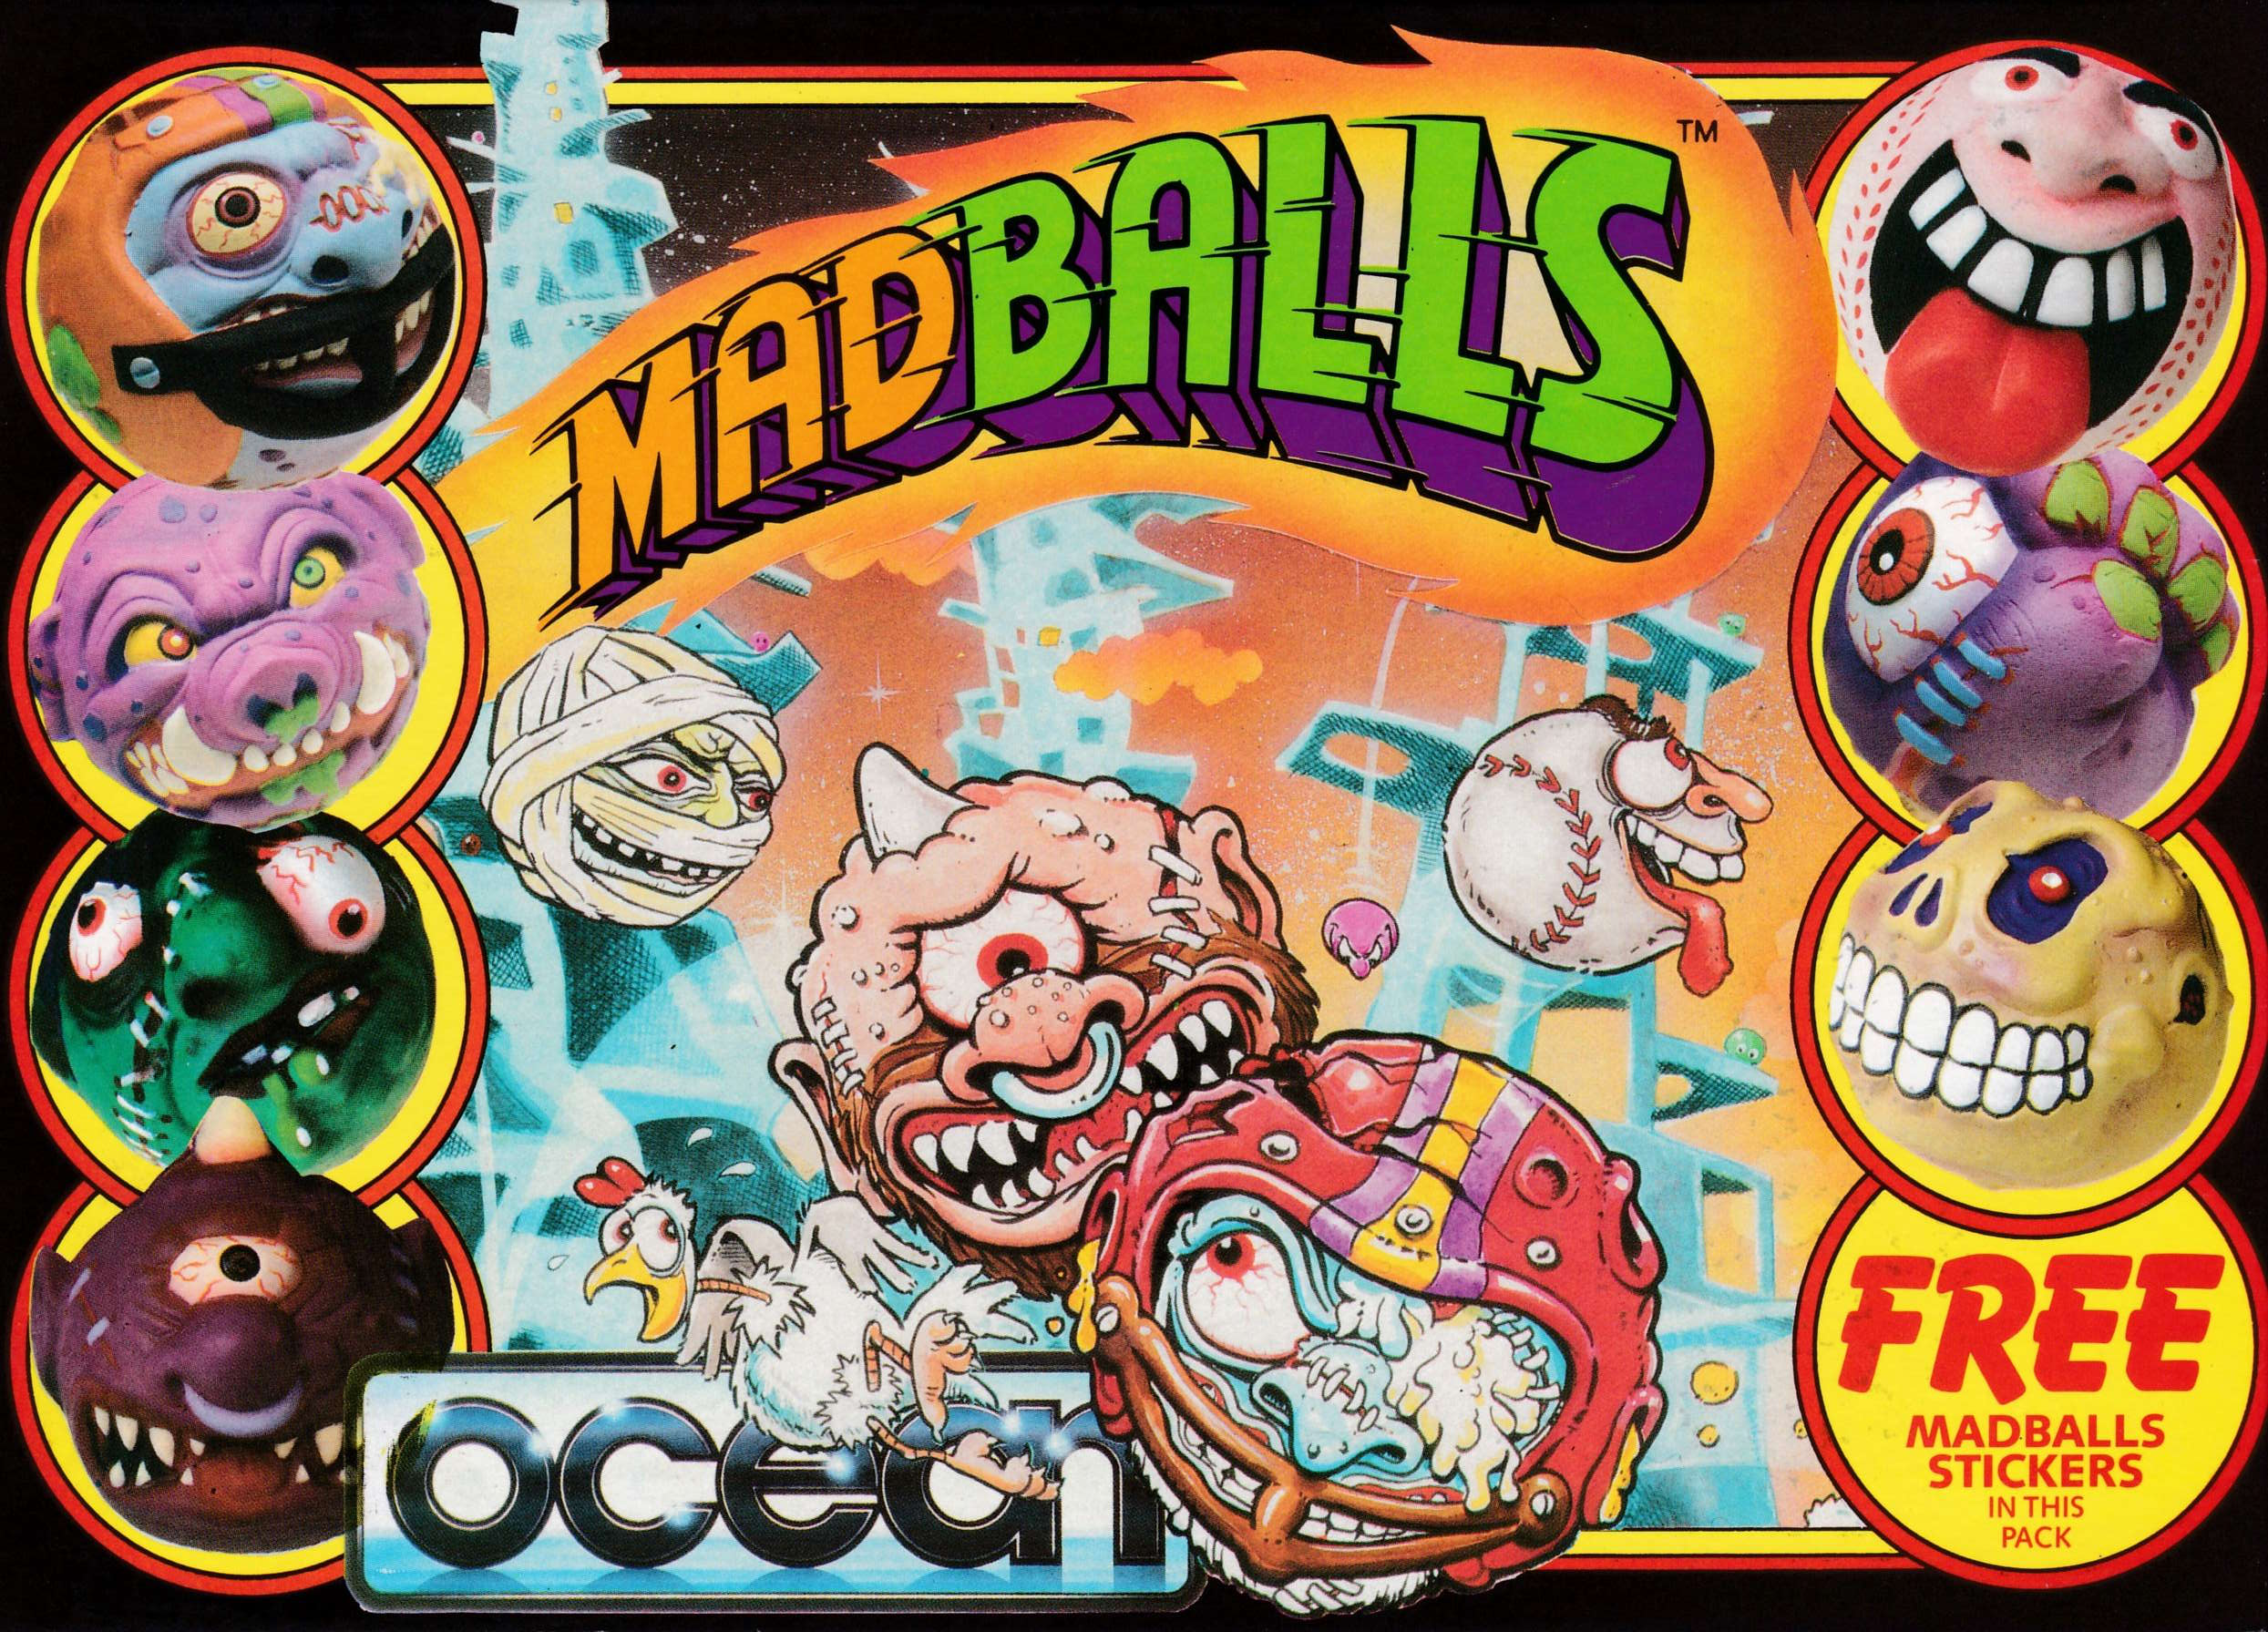 cover of the Amstrad CPC game Madballs  by GameBase CPC